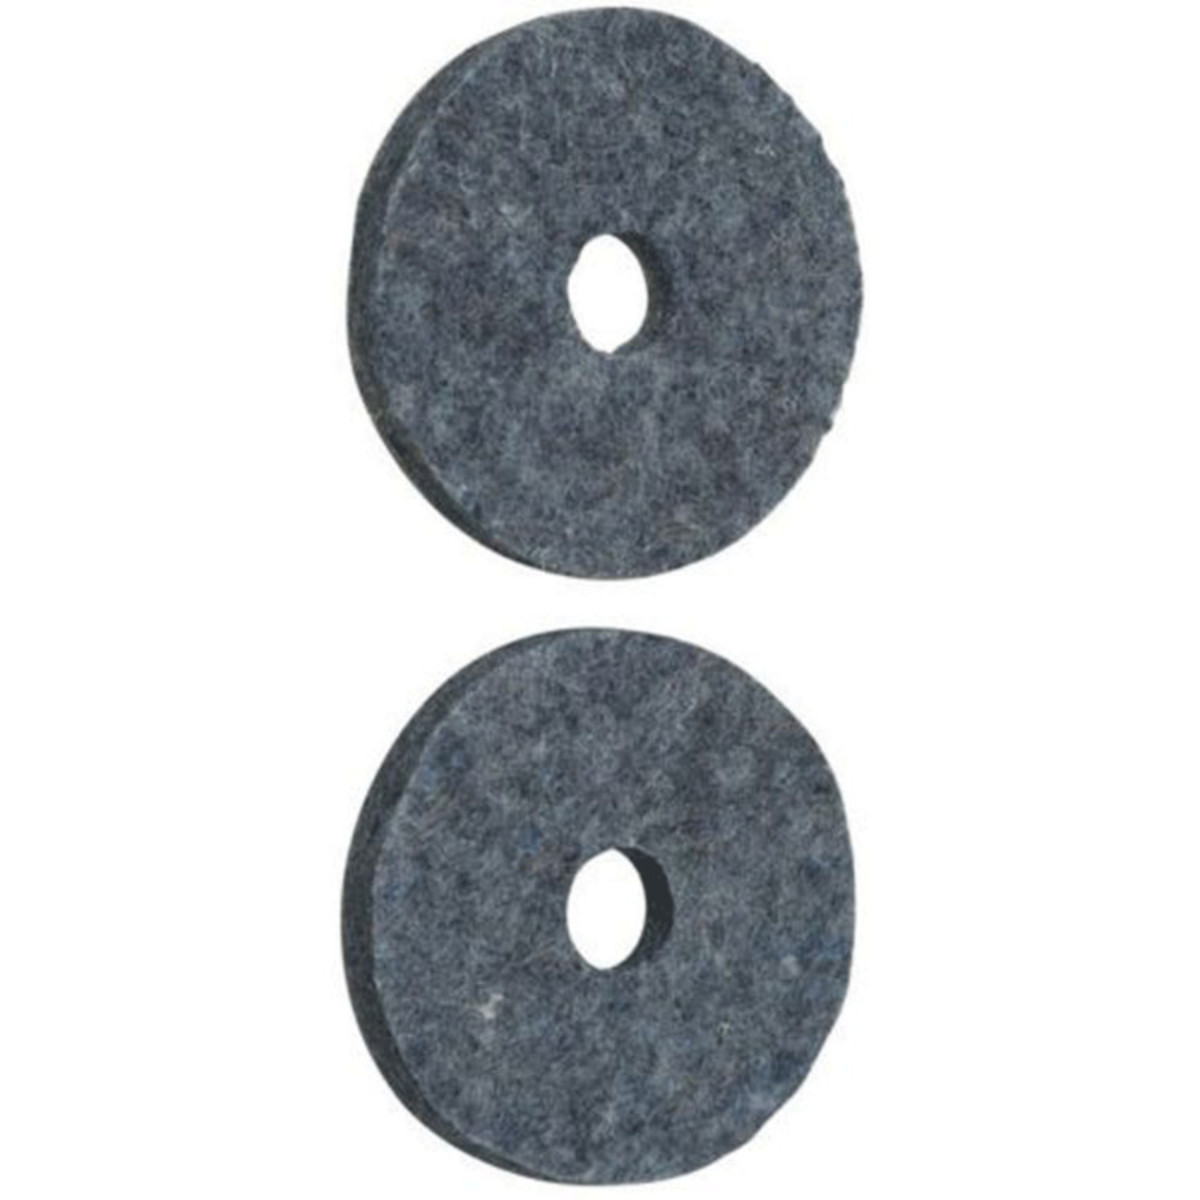 Large Washers Dixon Felt Washers Large 10 Pack At Gear4musicie